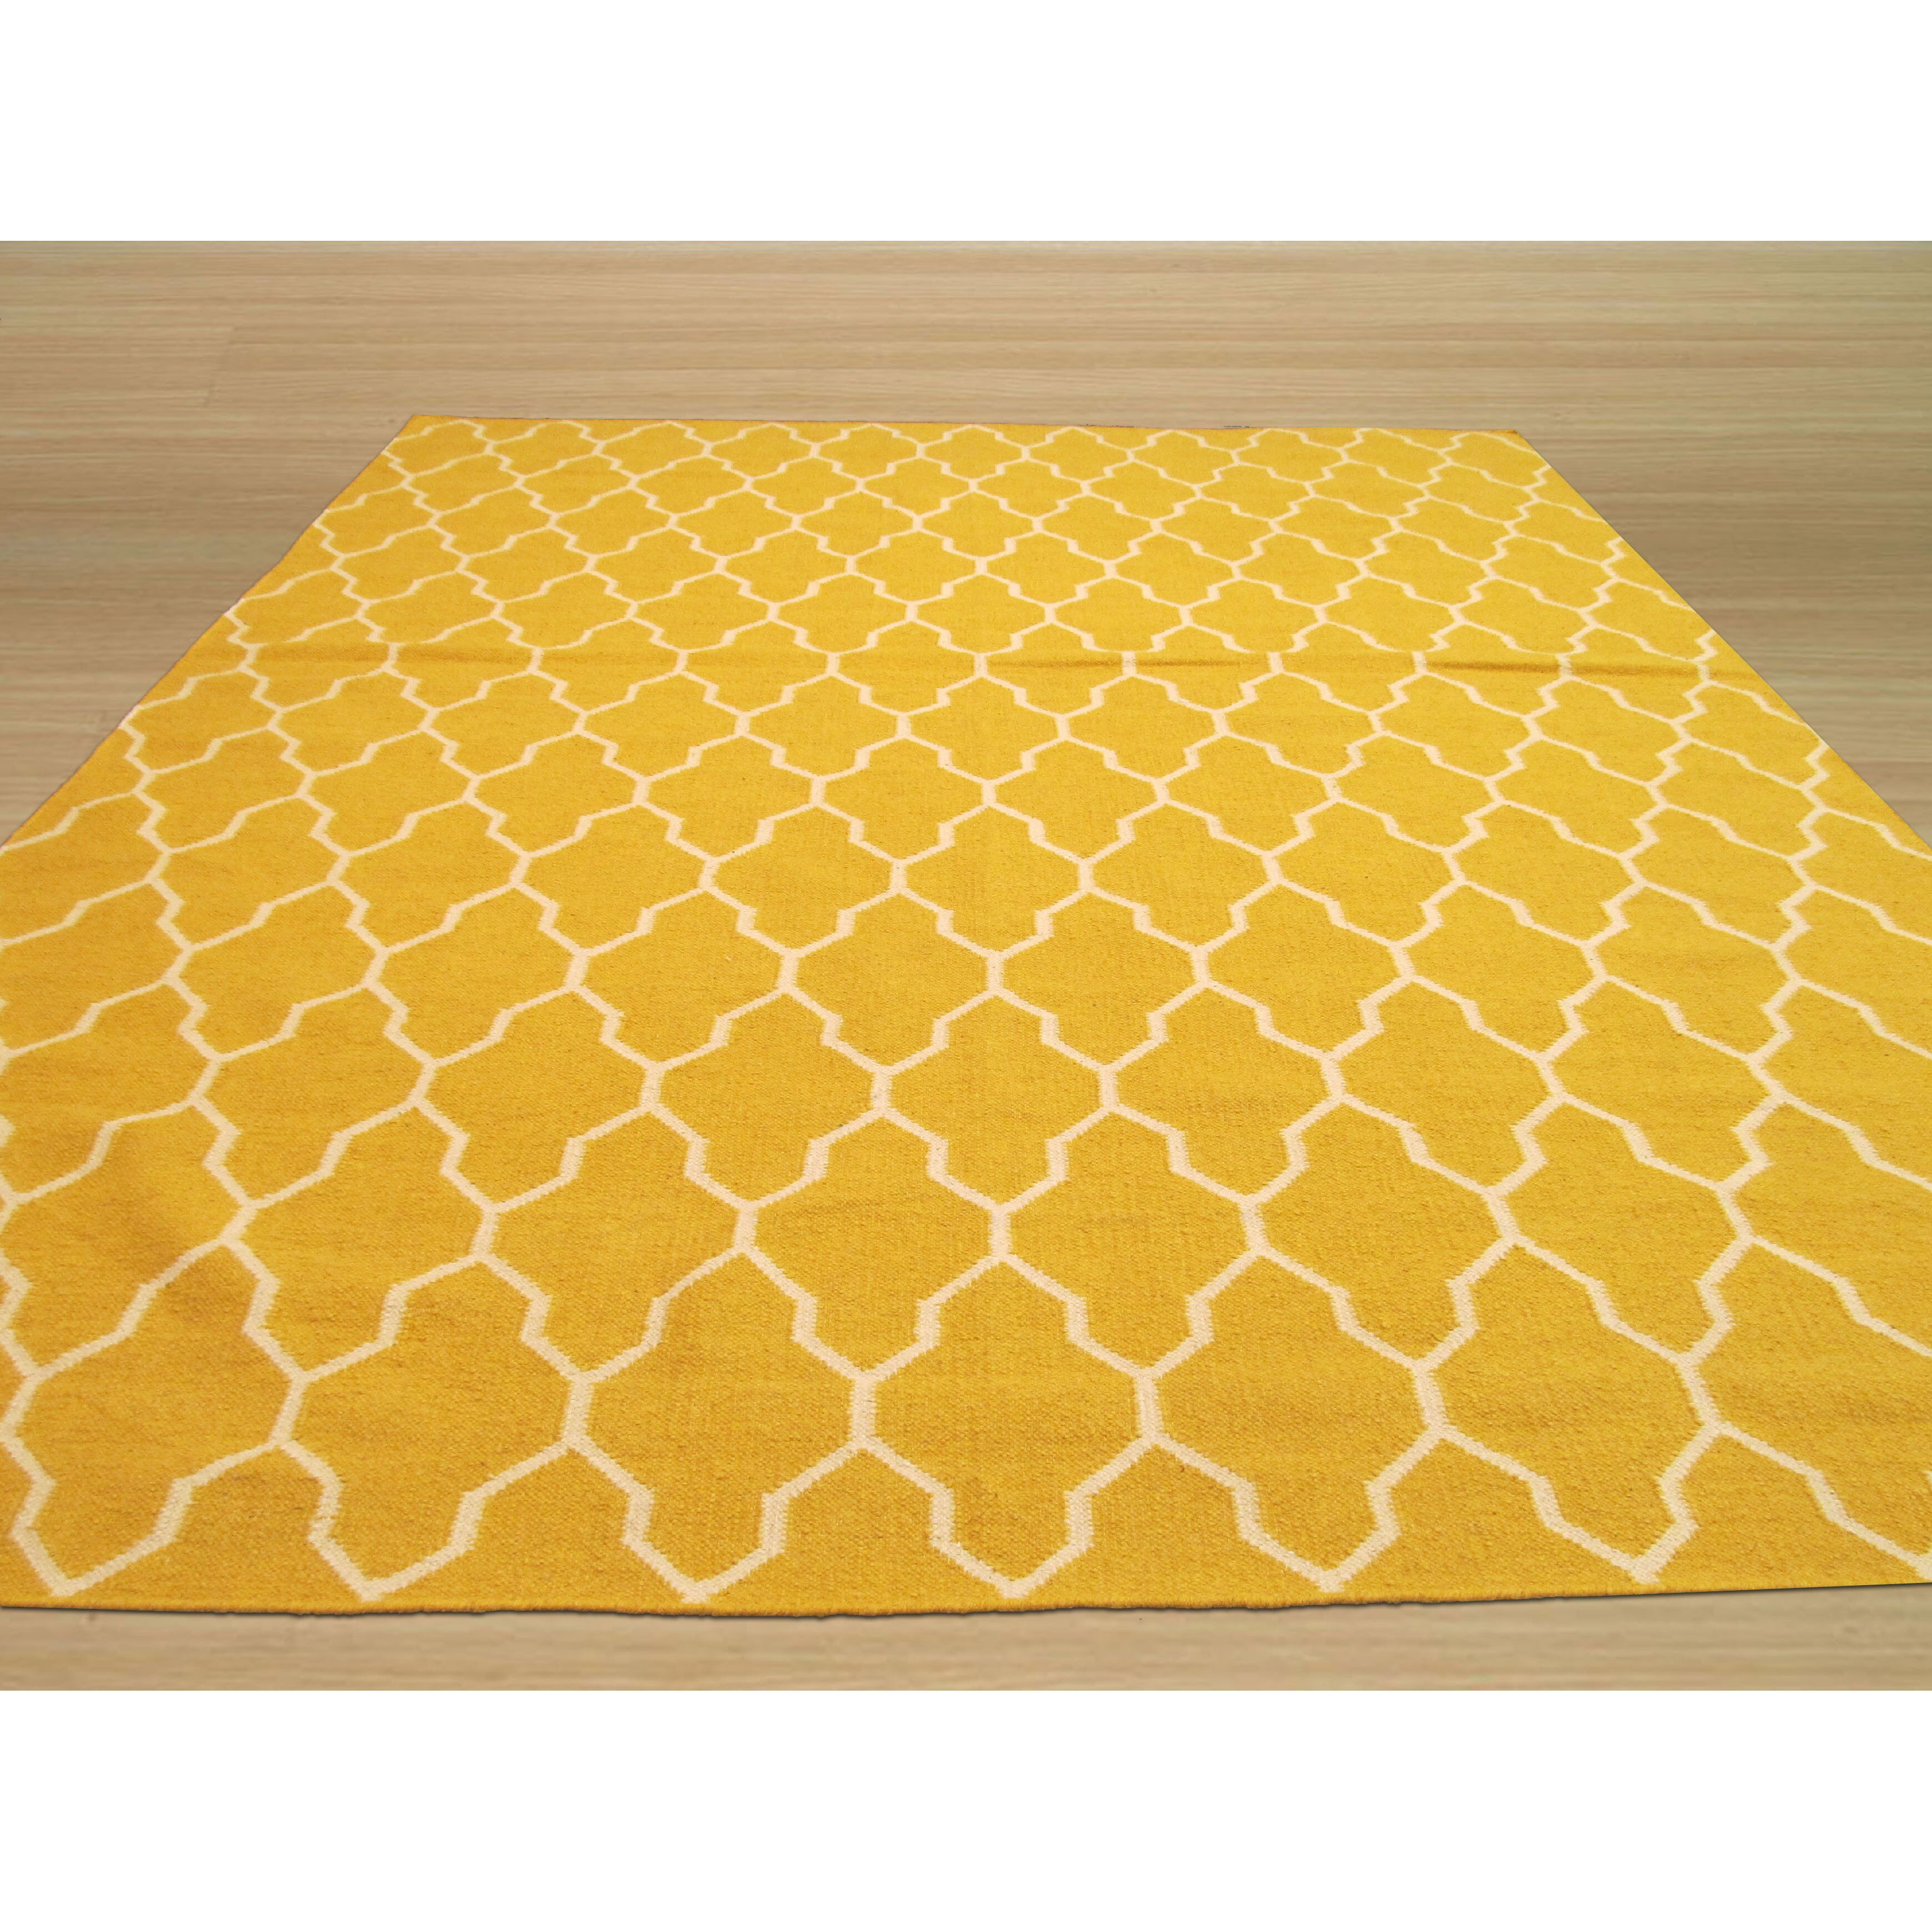 Eastern Rugs Hand Knotted Yellow Ivory Area Rug Wayfair